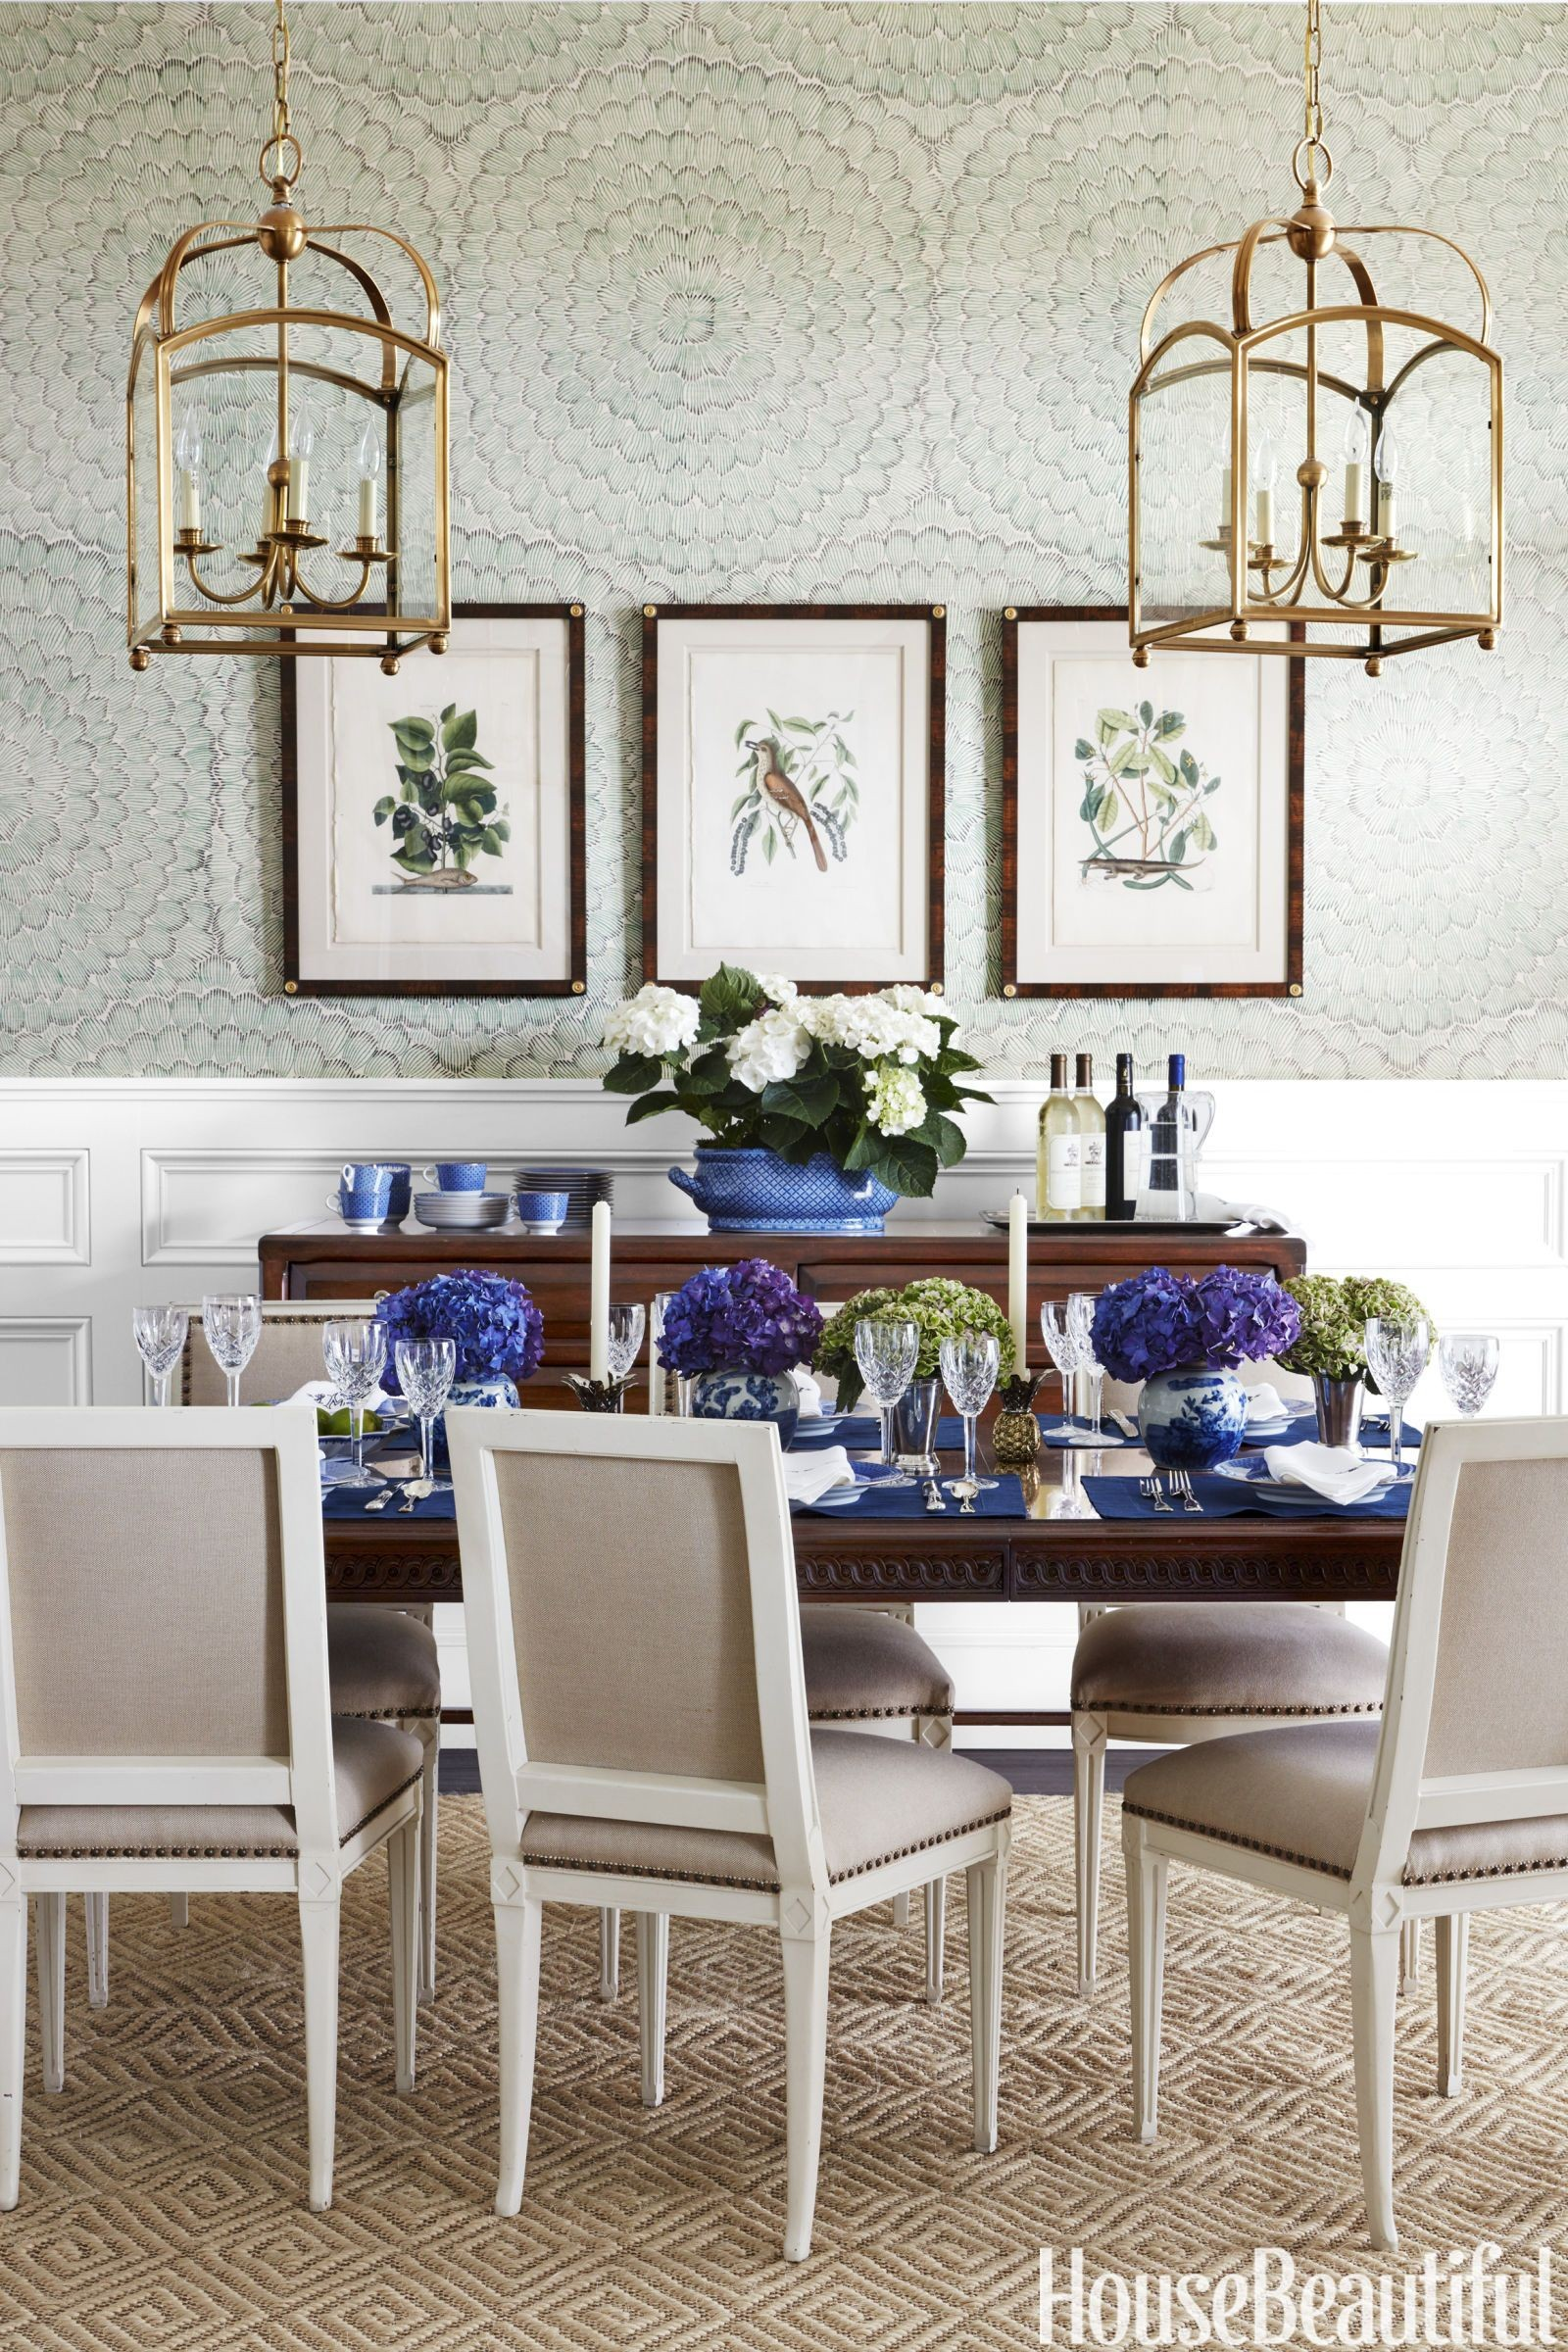 Wallpaper Dinding Full Paling Baik Untuk Wallpaper Dining Room Ngajari Of Wallpaper Dinding Full Paling Baik Untuk Wallpaper Download Options Wake forest University